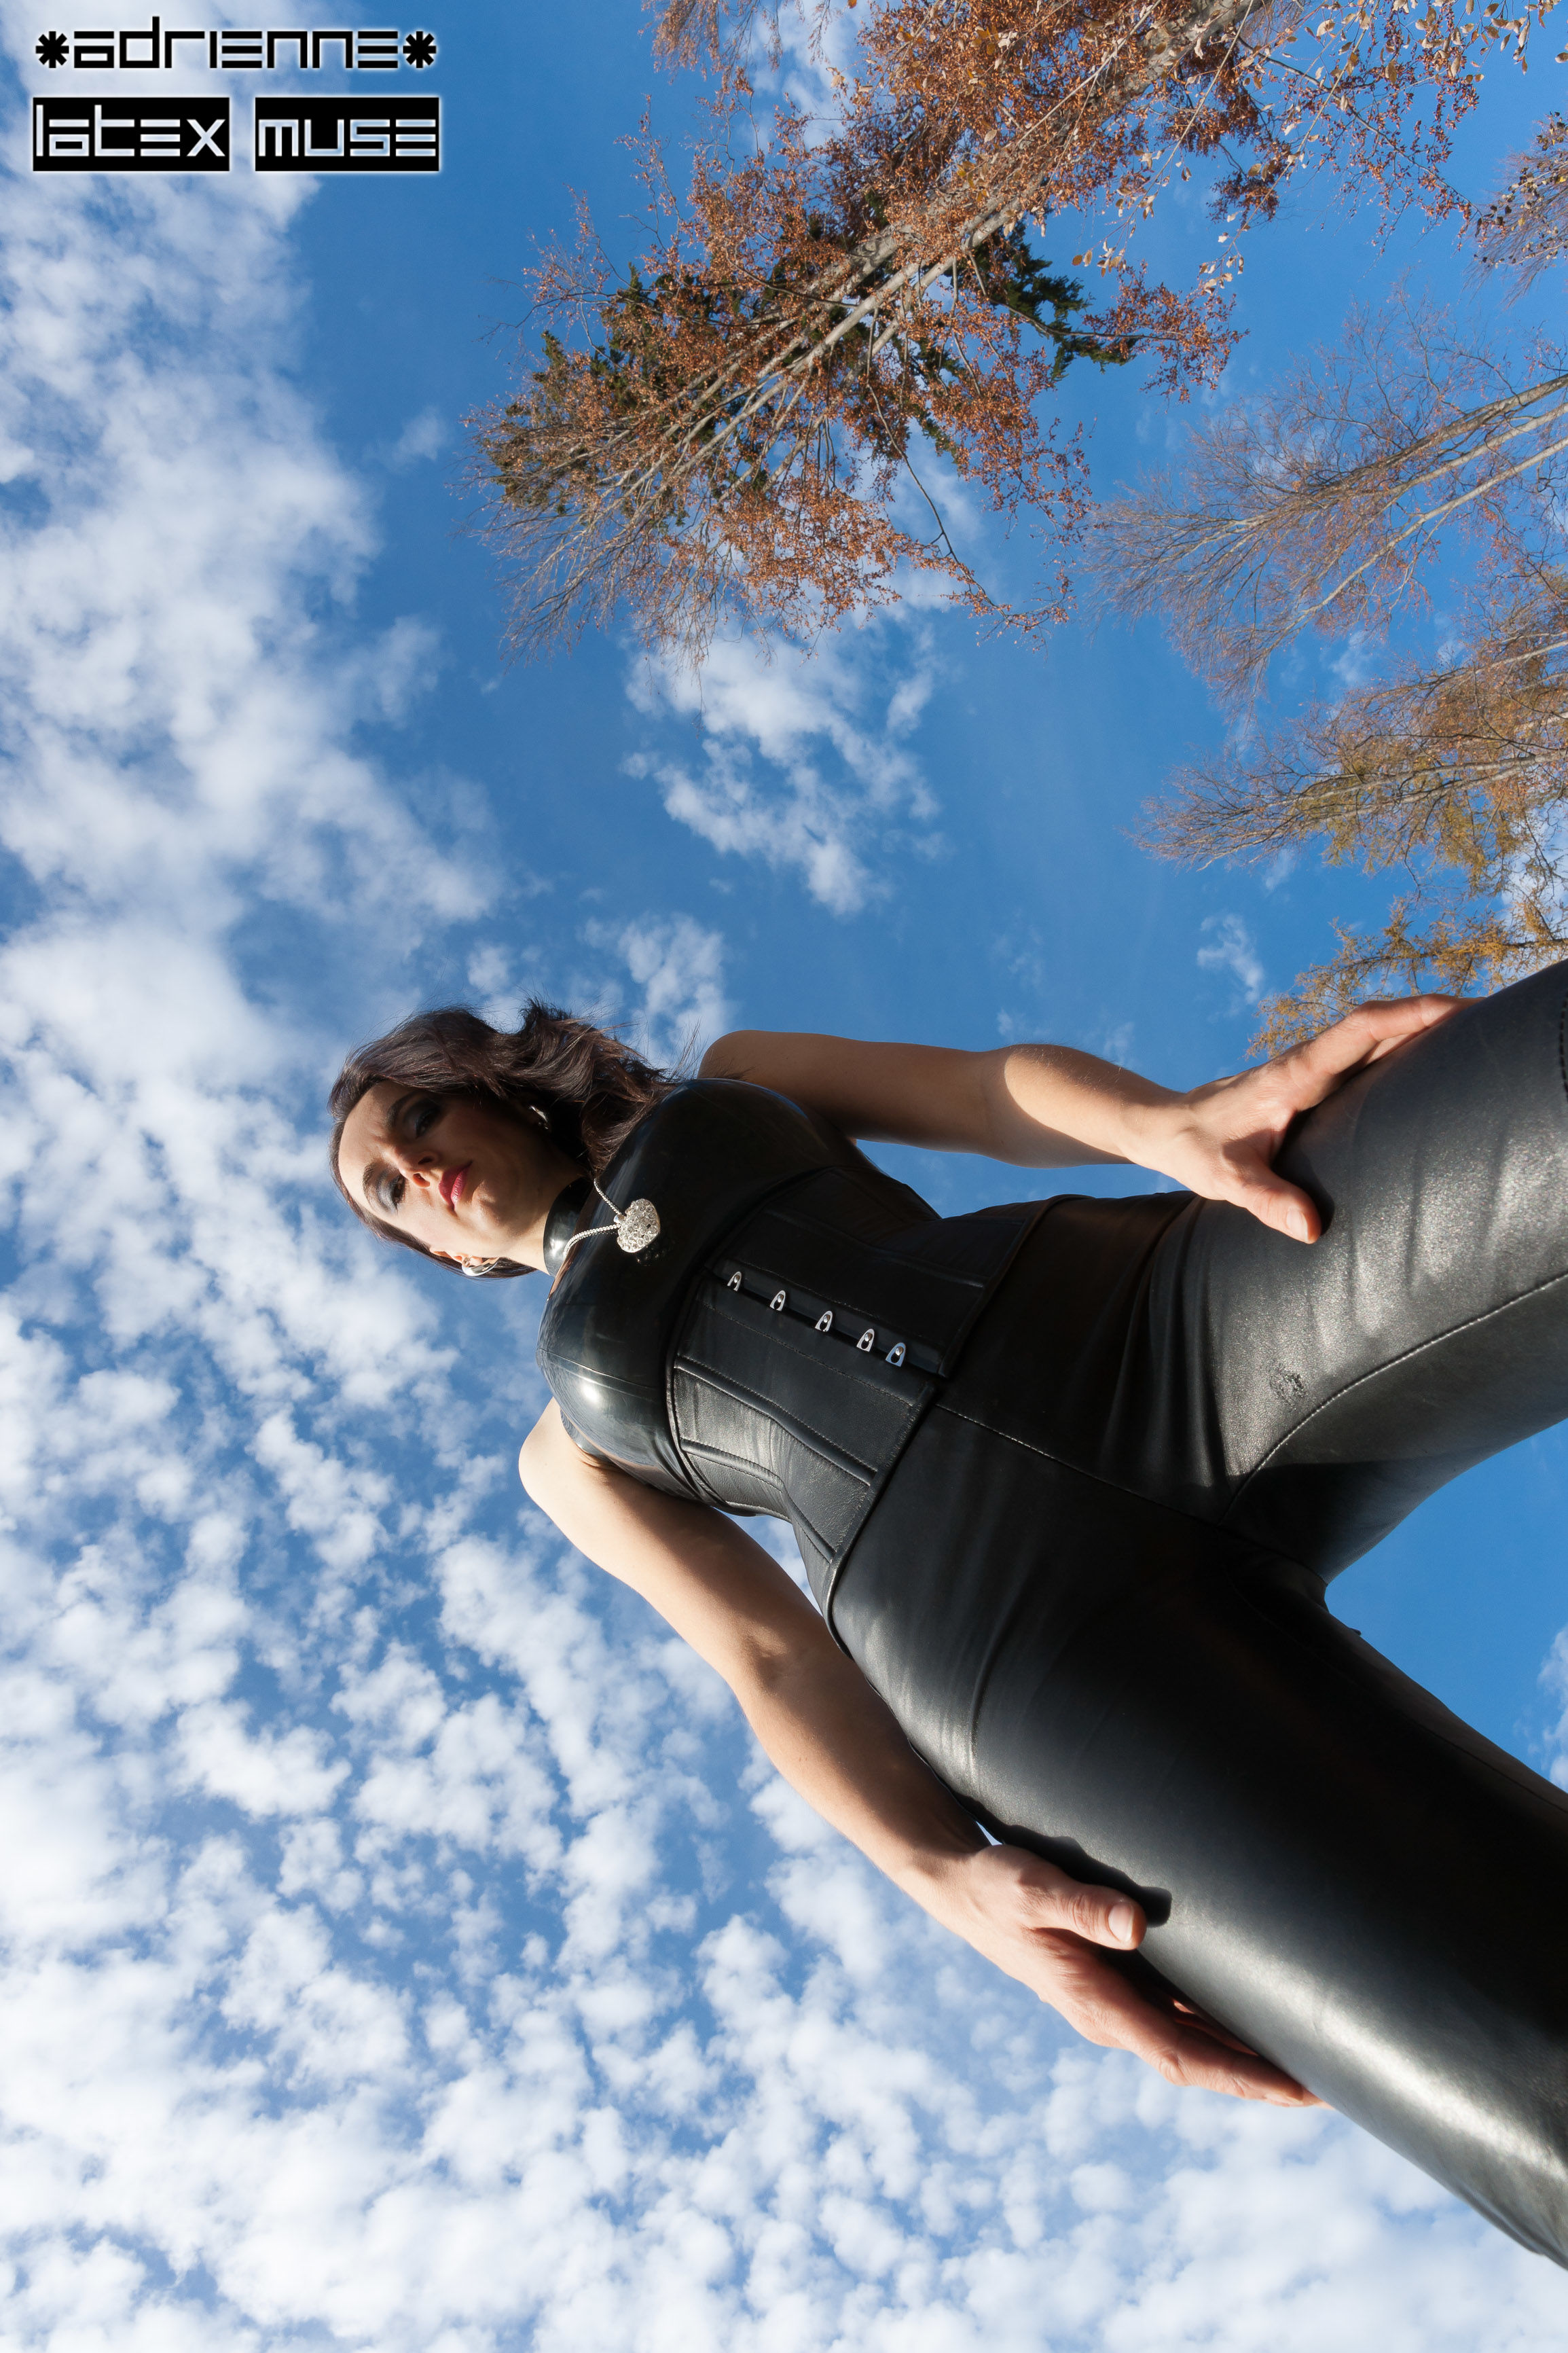 2015 - Leather pants series 2